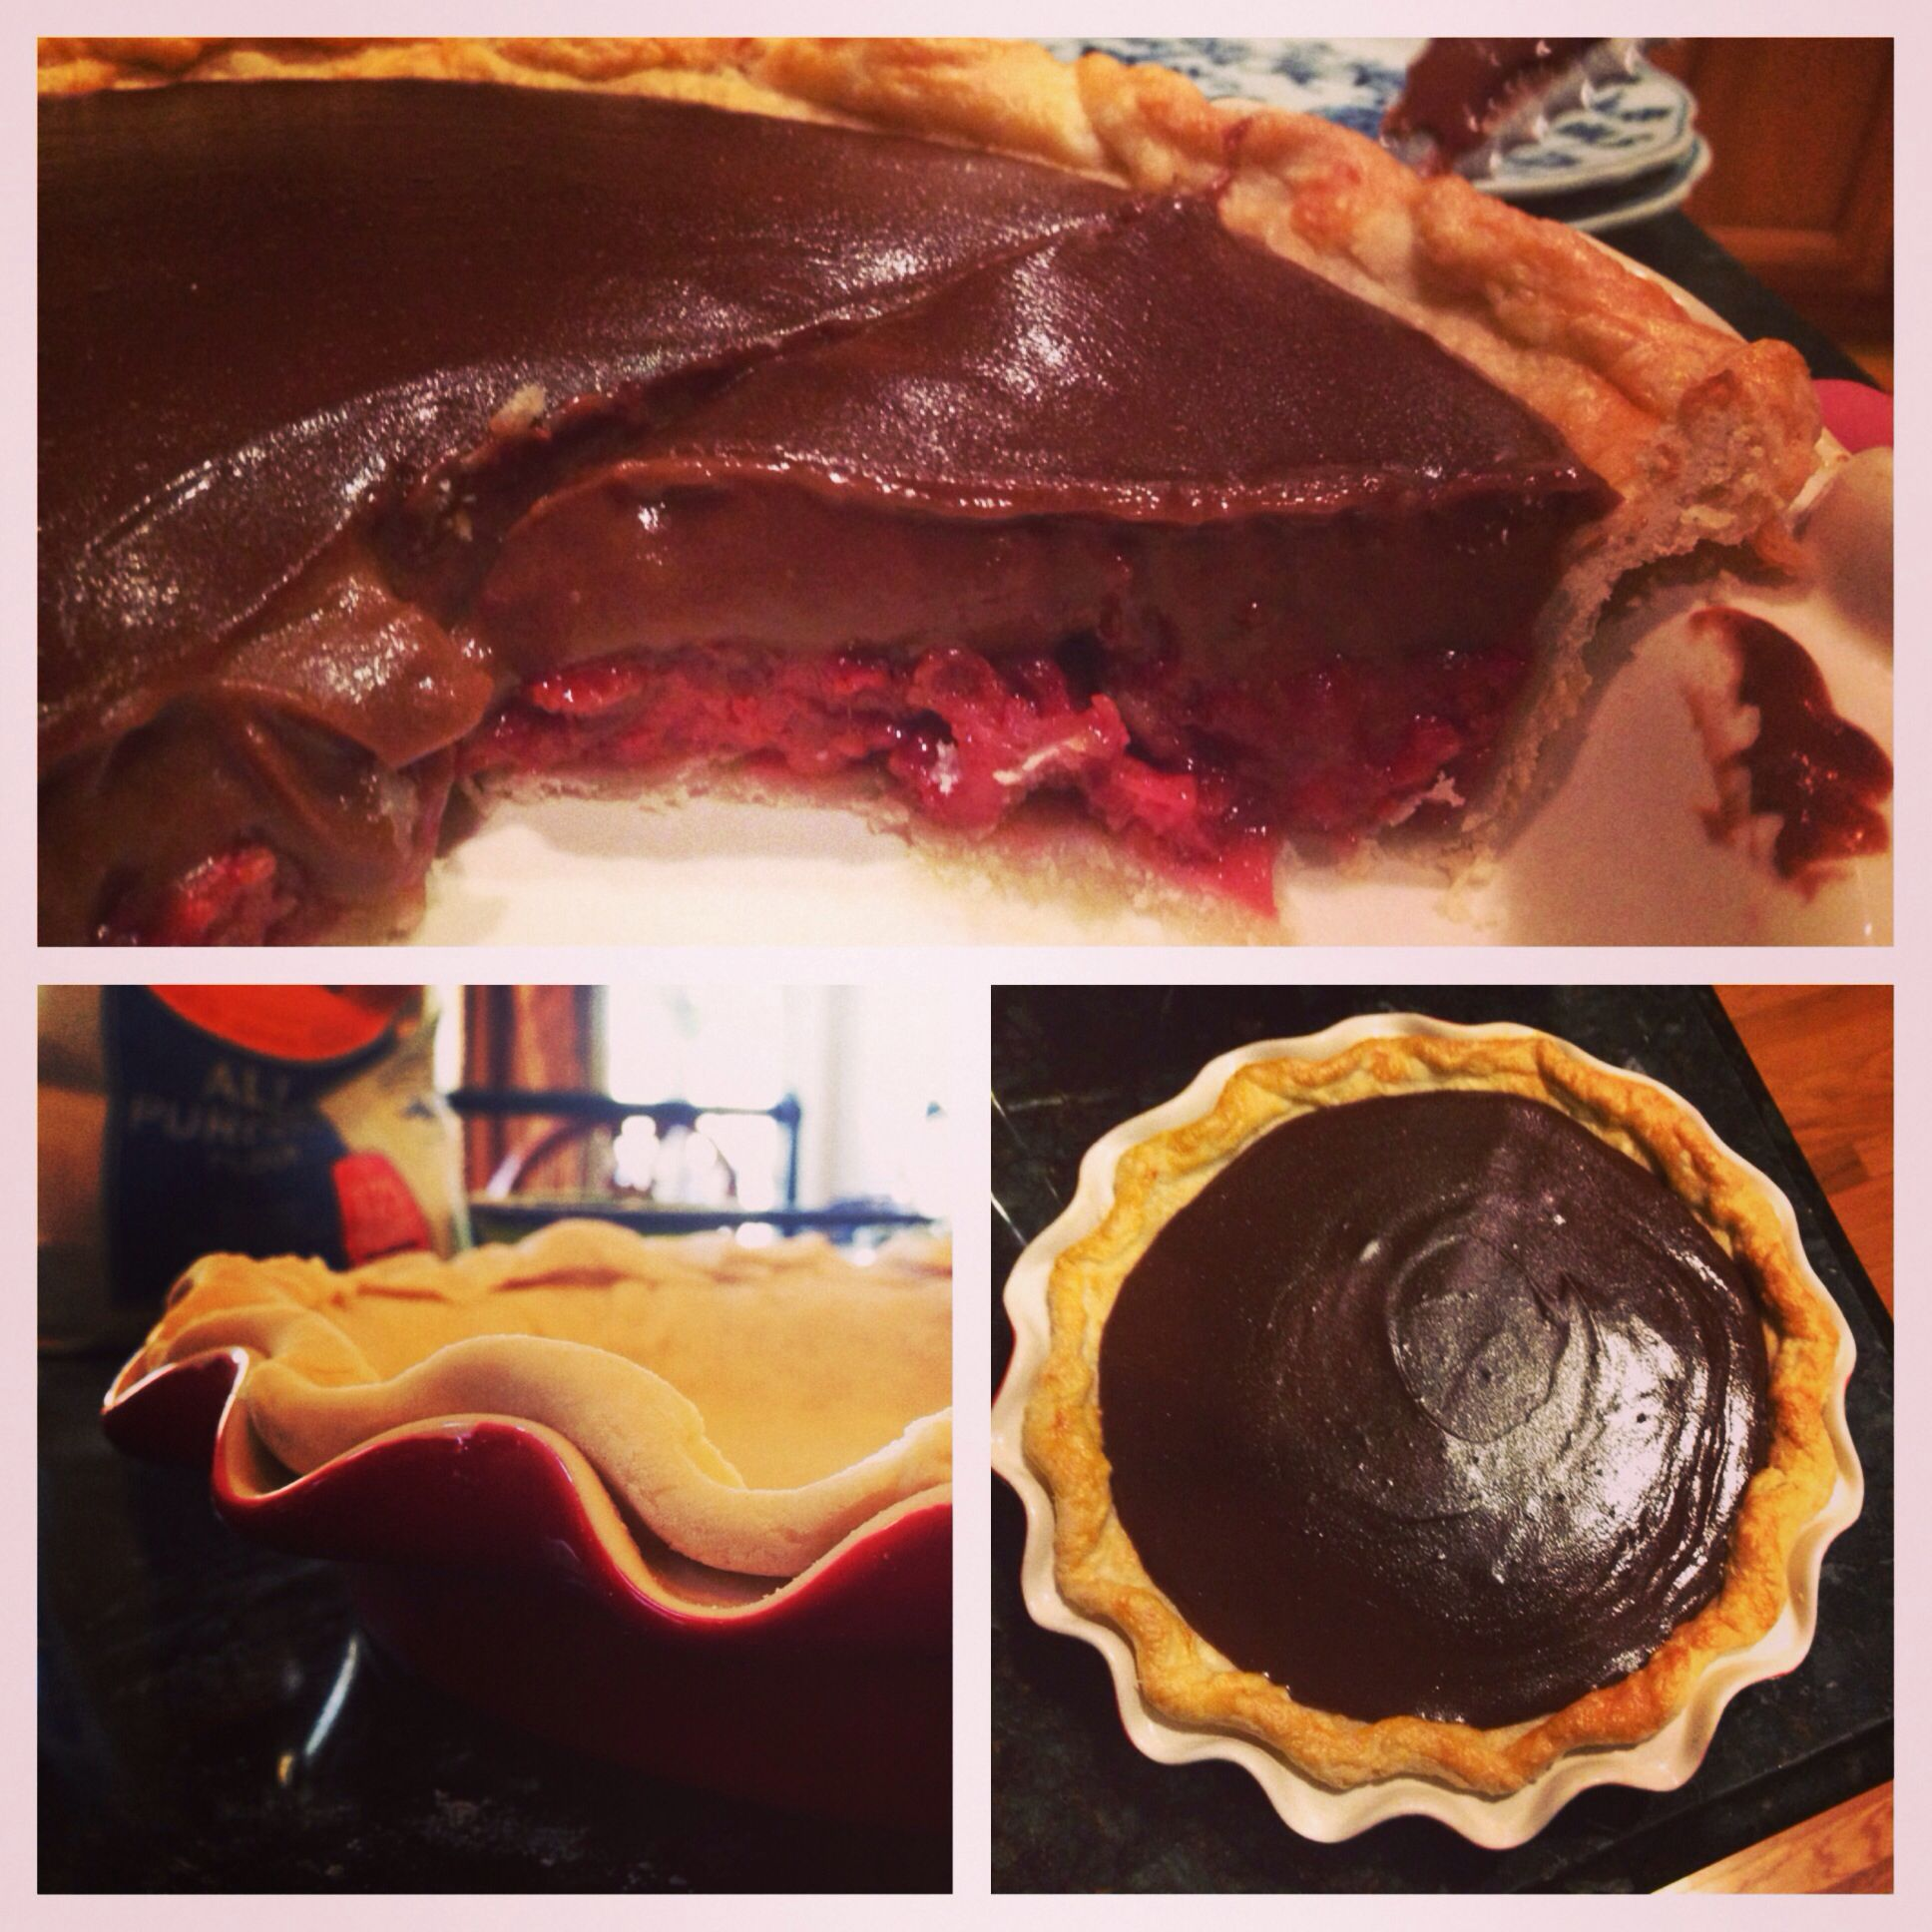 Chocolate strawberry pie | Receipts ... Pies/Galettes/Tarts | Pintere ...